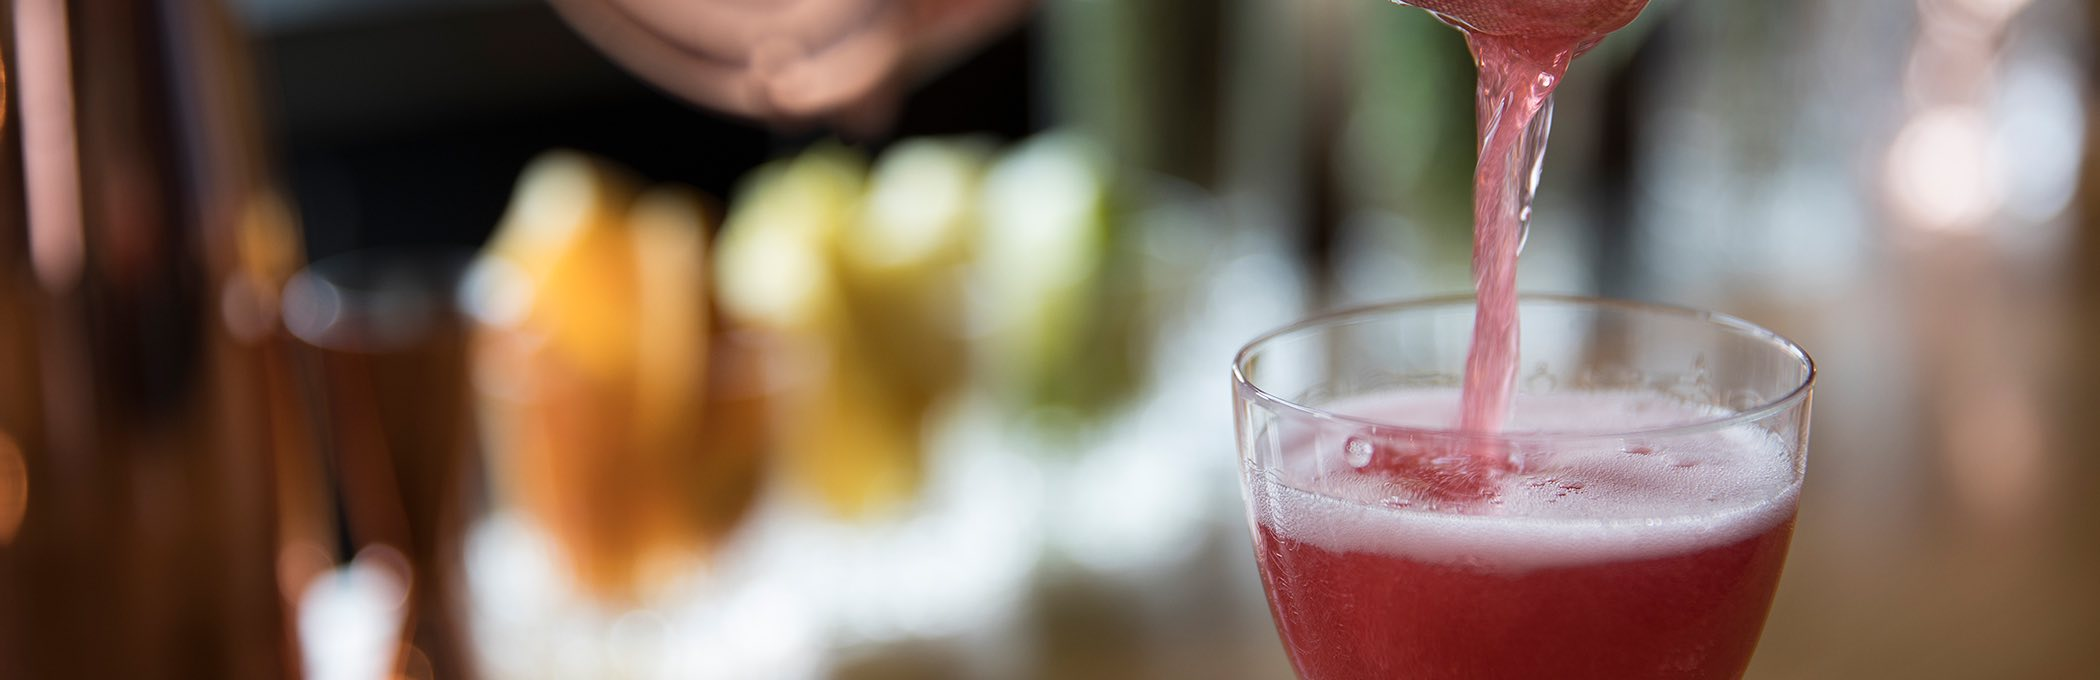 close up of a deep pink cocktail pouring from the shaker into a glass